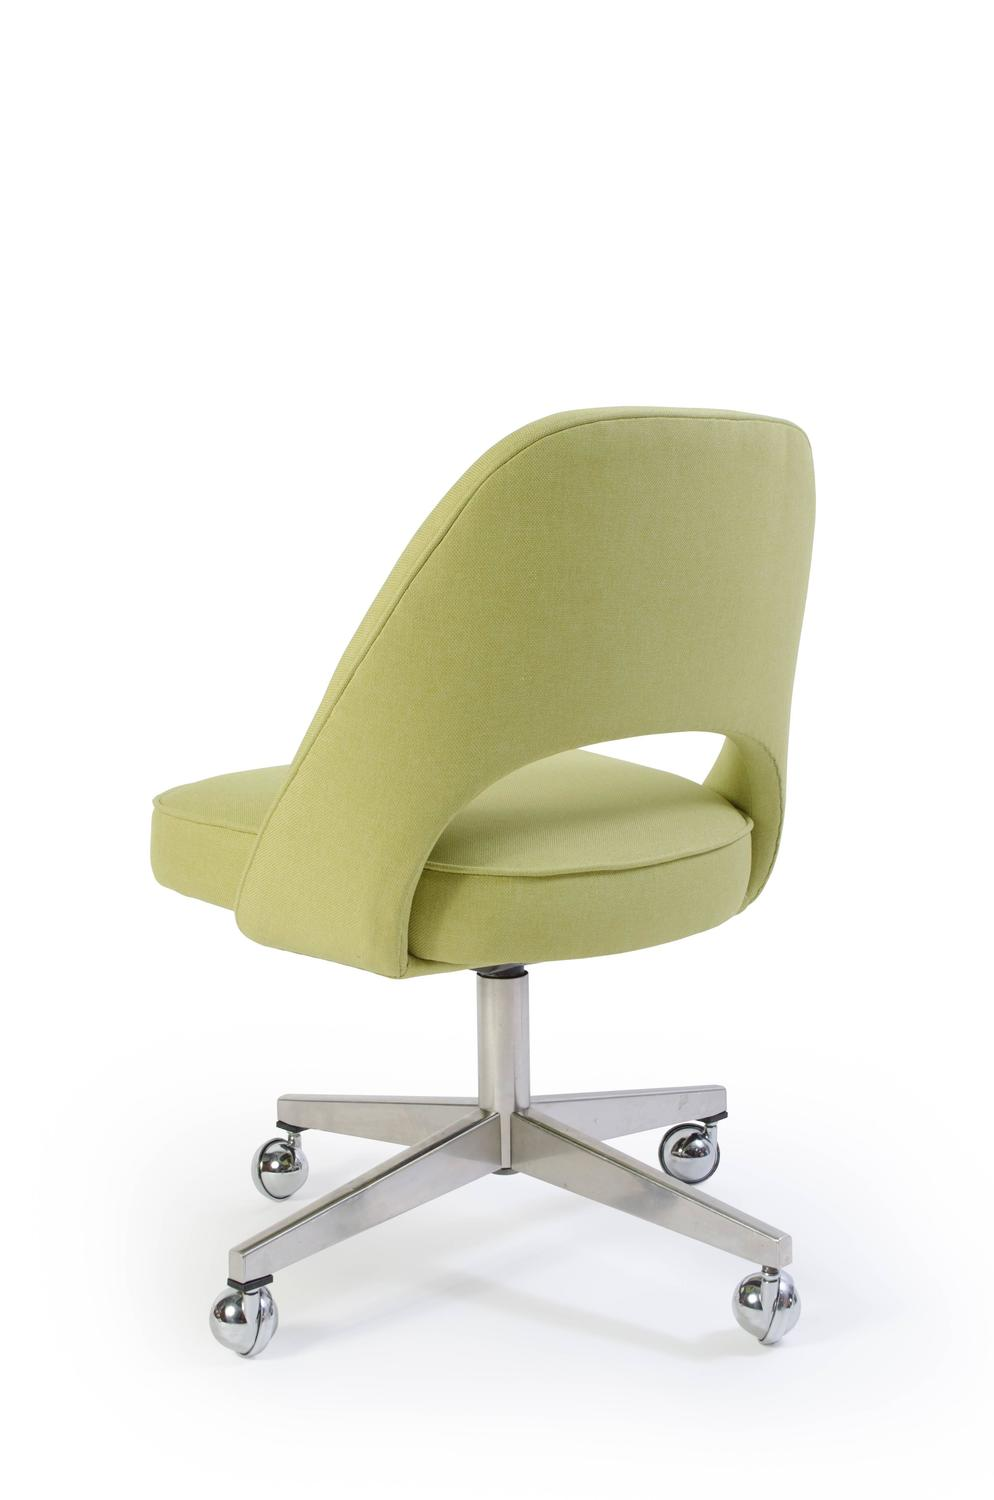 Saarinen executive armless chair with swivel base in green for Saarinen executive armless chair